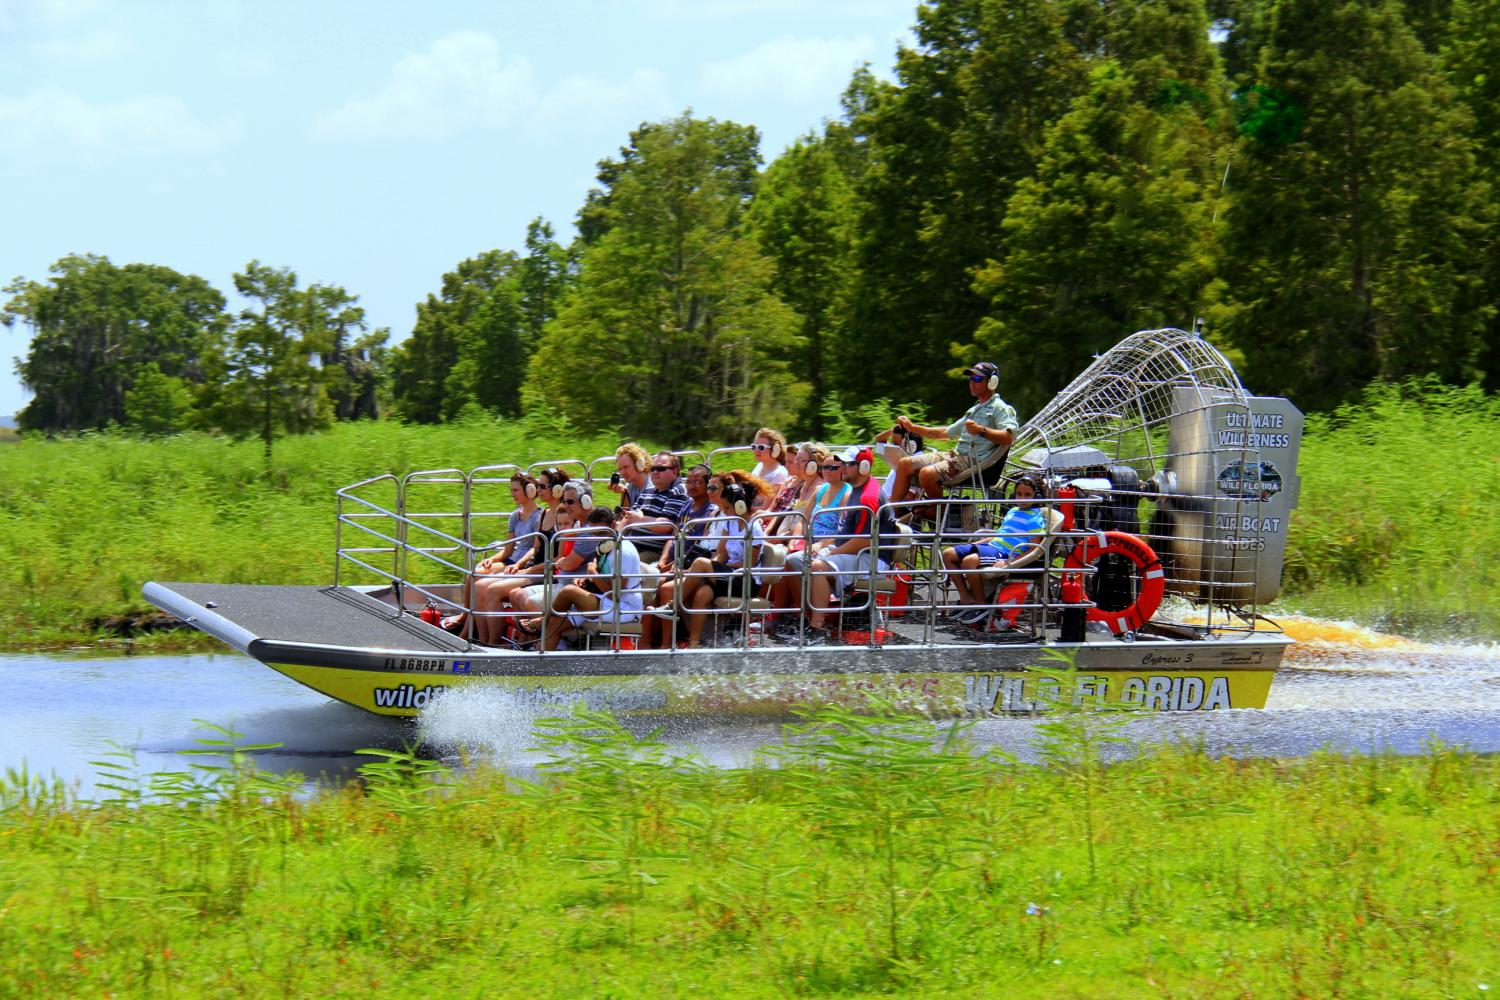 Ultimate Airboat Ride With Transportation